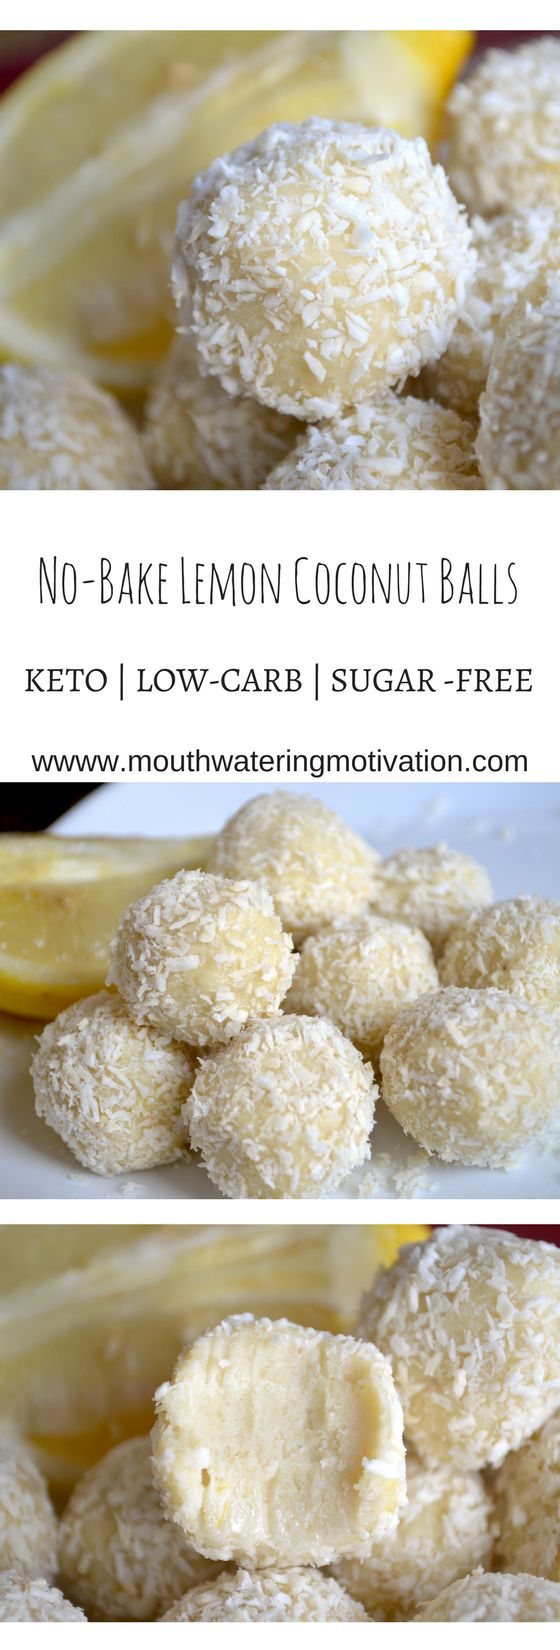 No-Bake Lemon Coconut Balls #keto #lowcarb #lemon #coconut